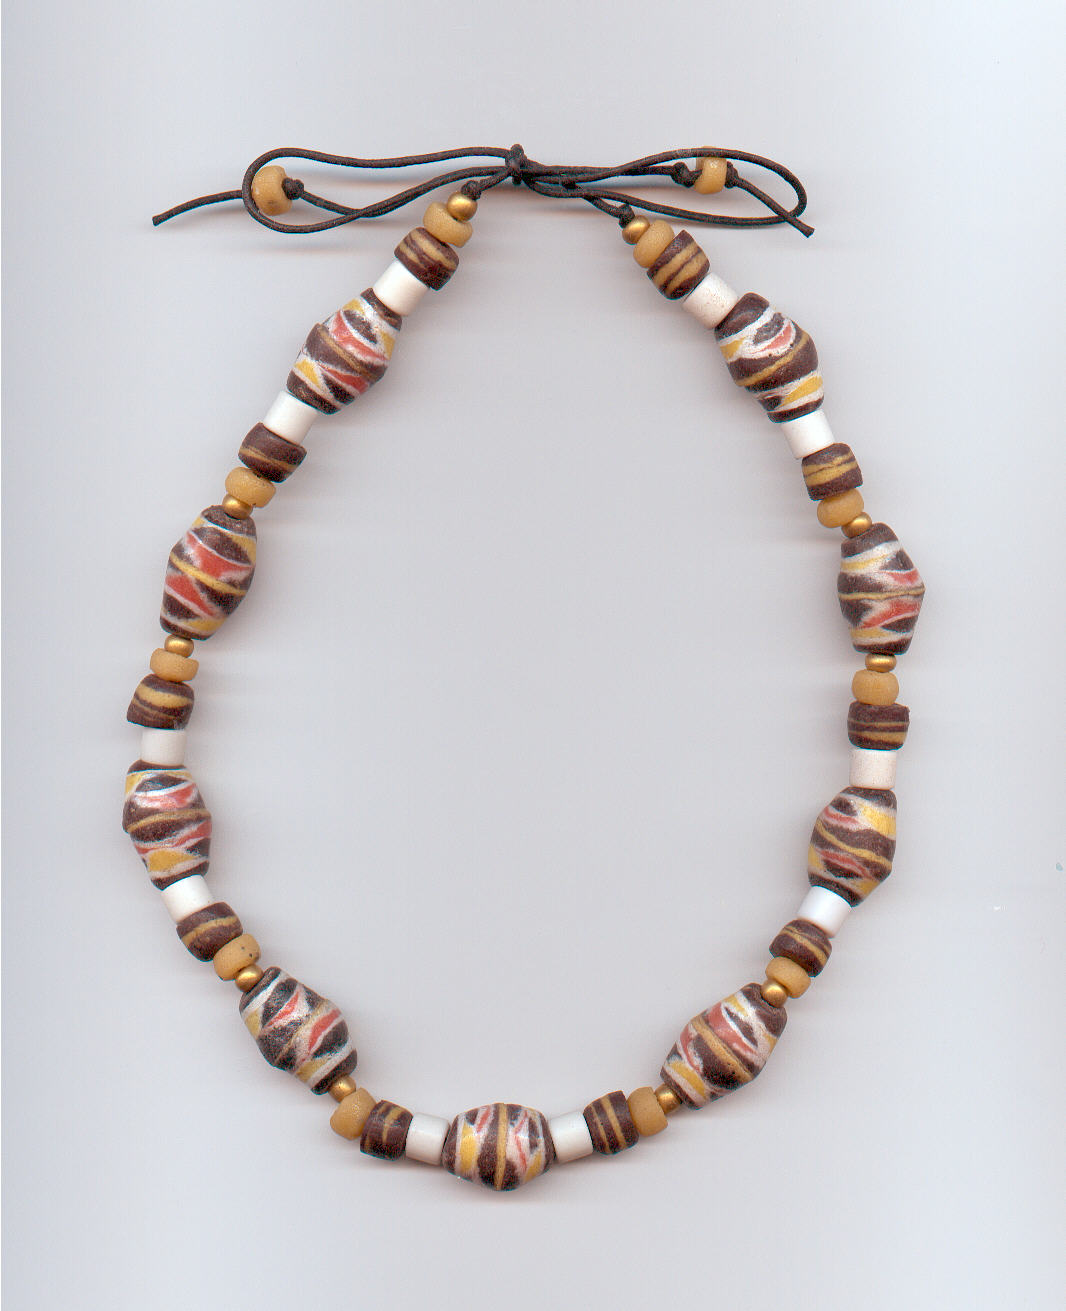 Click to see larger picture. N102 necklace